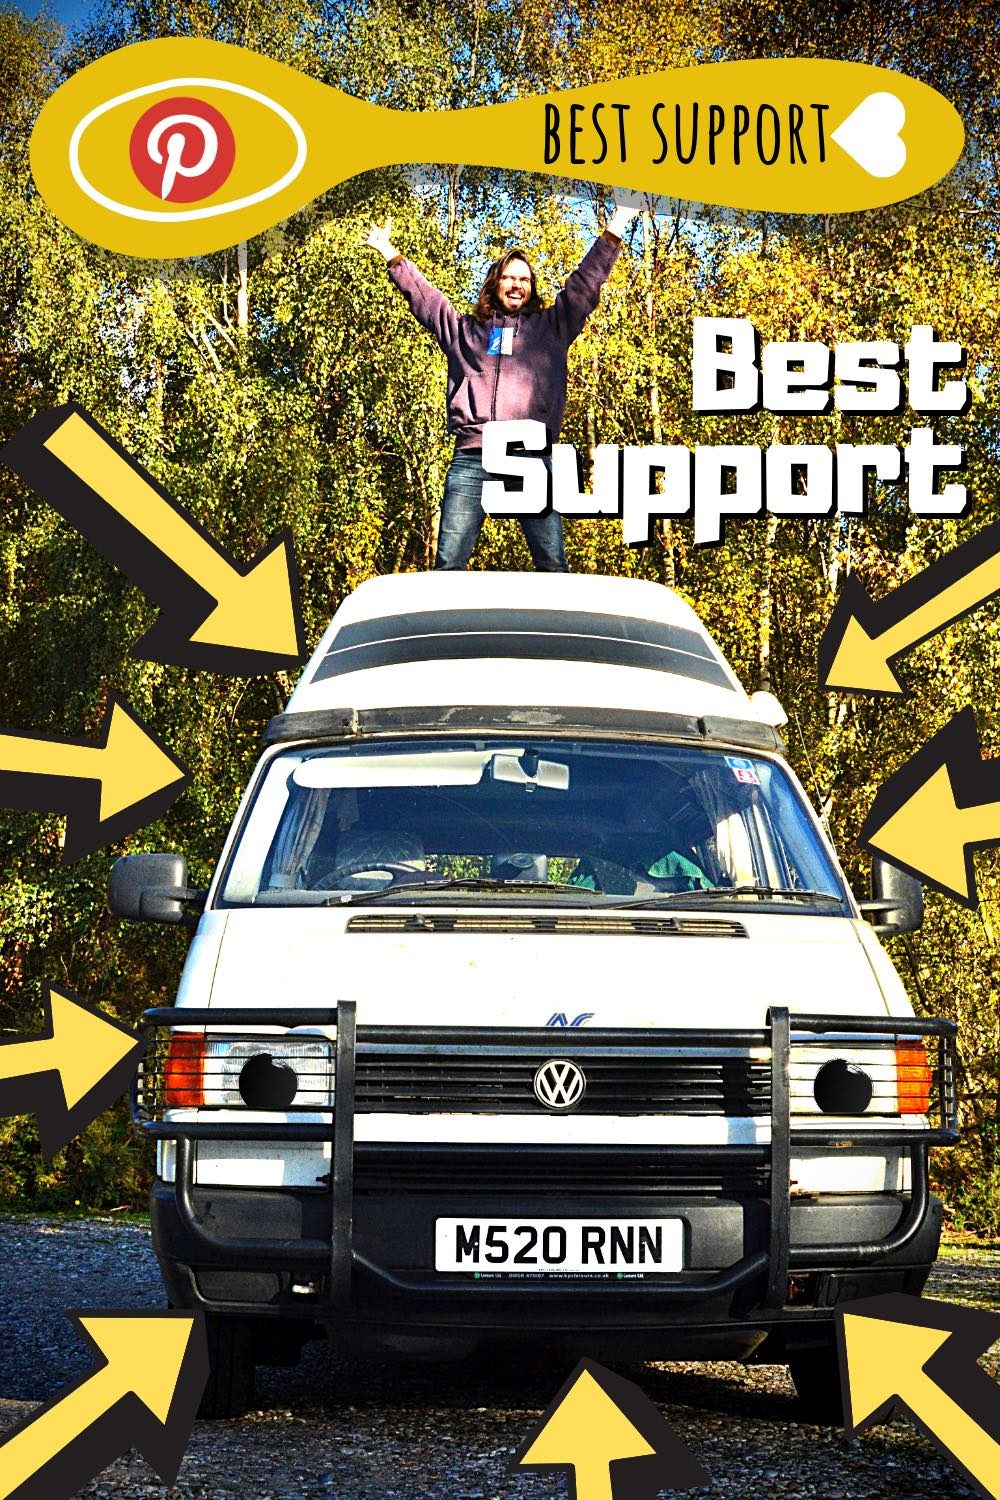 Ronnie the campervan is smiling at the camera. Paul is standing on Ronnie, his arms stretched out towards the sky. Best support!